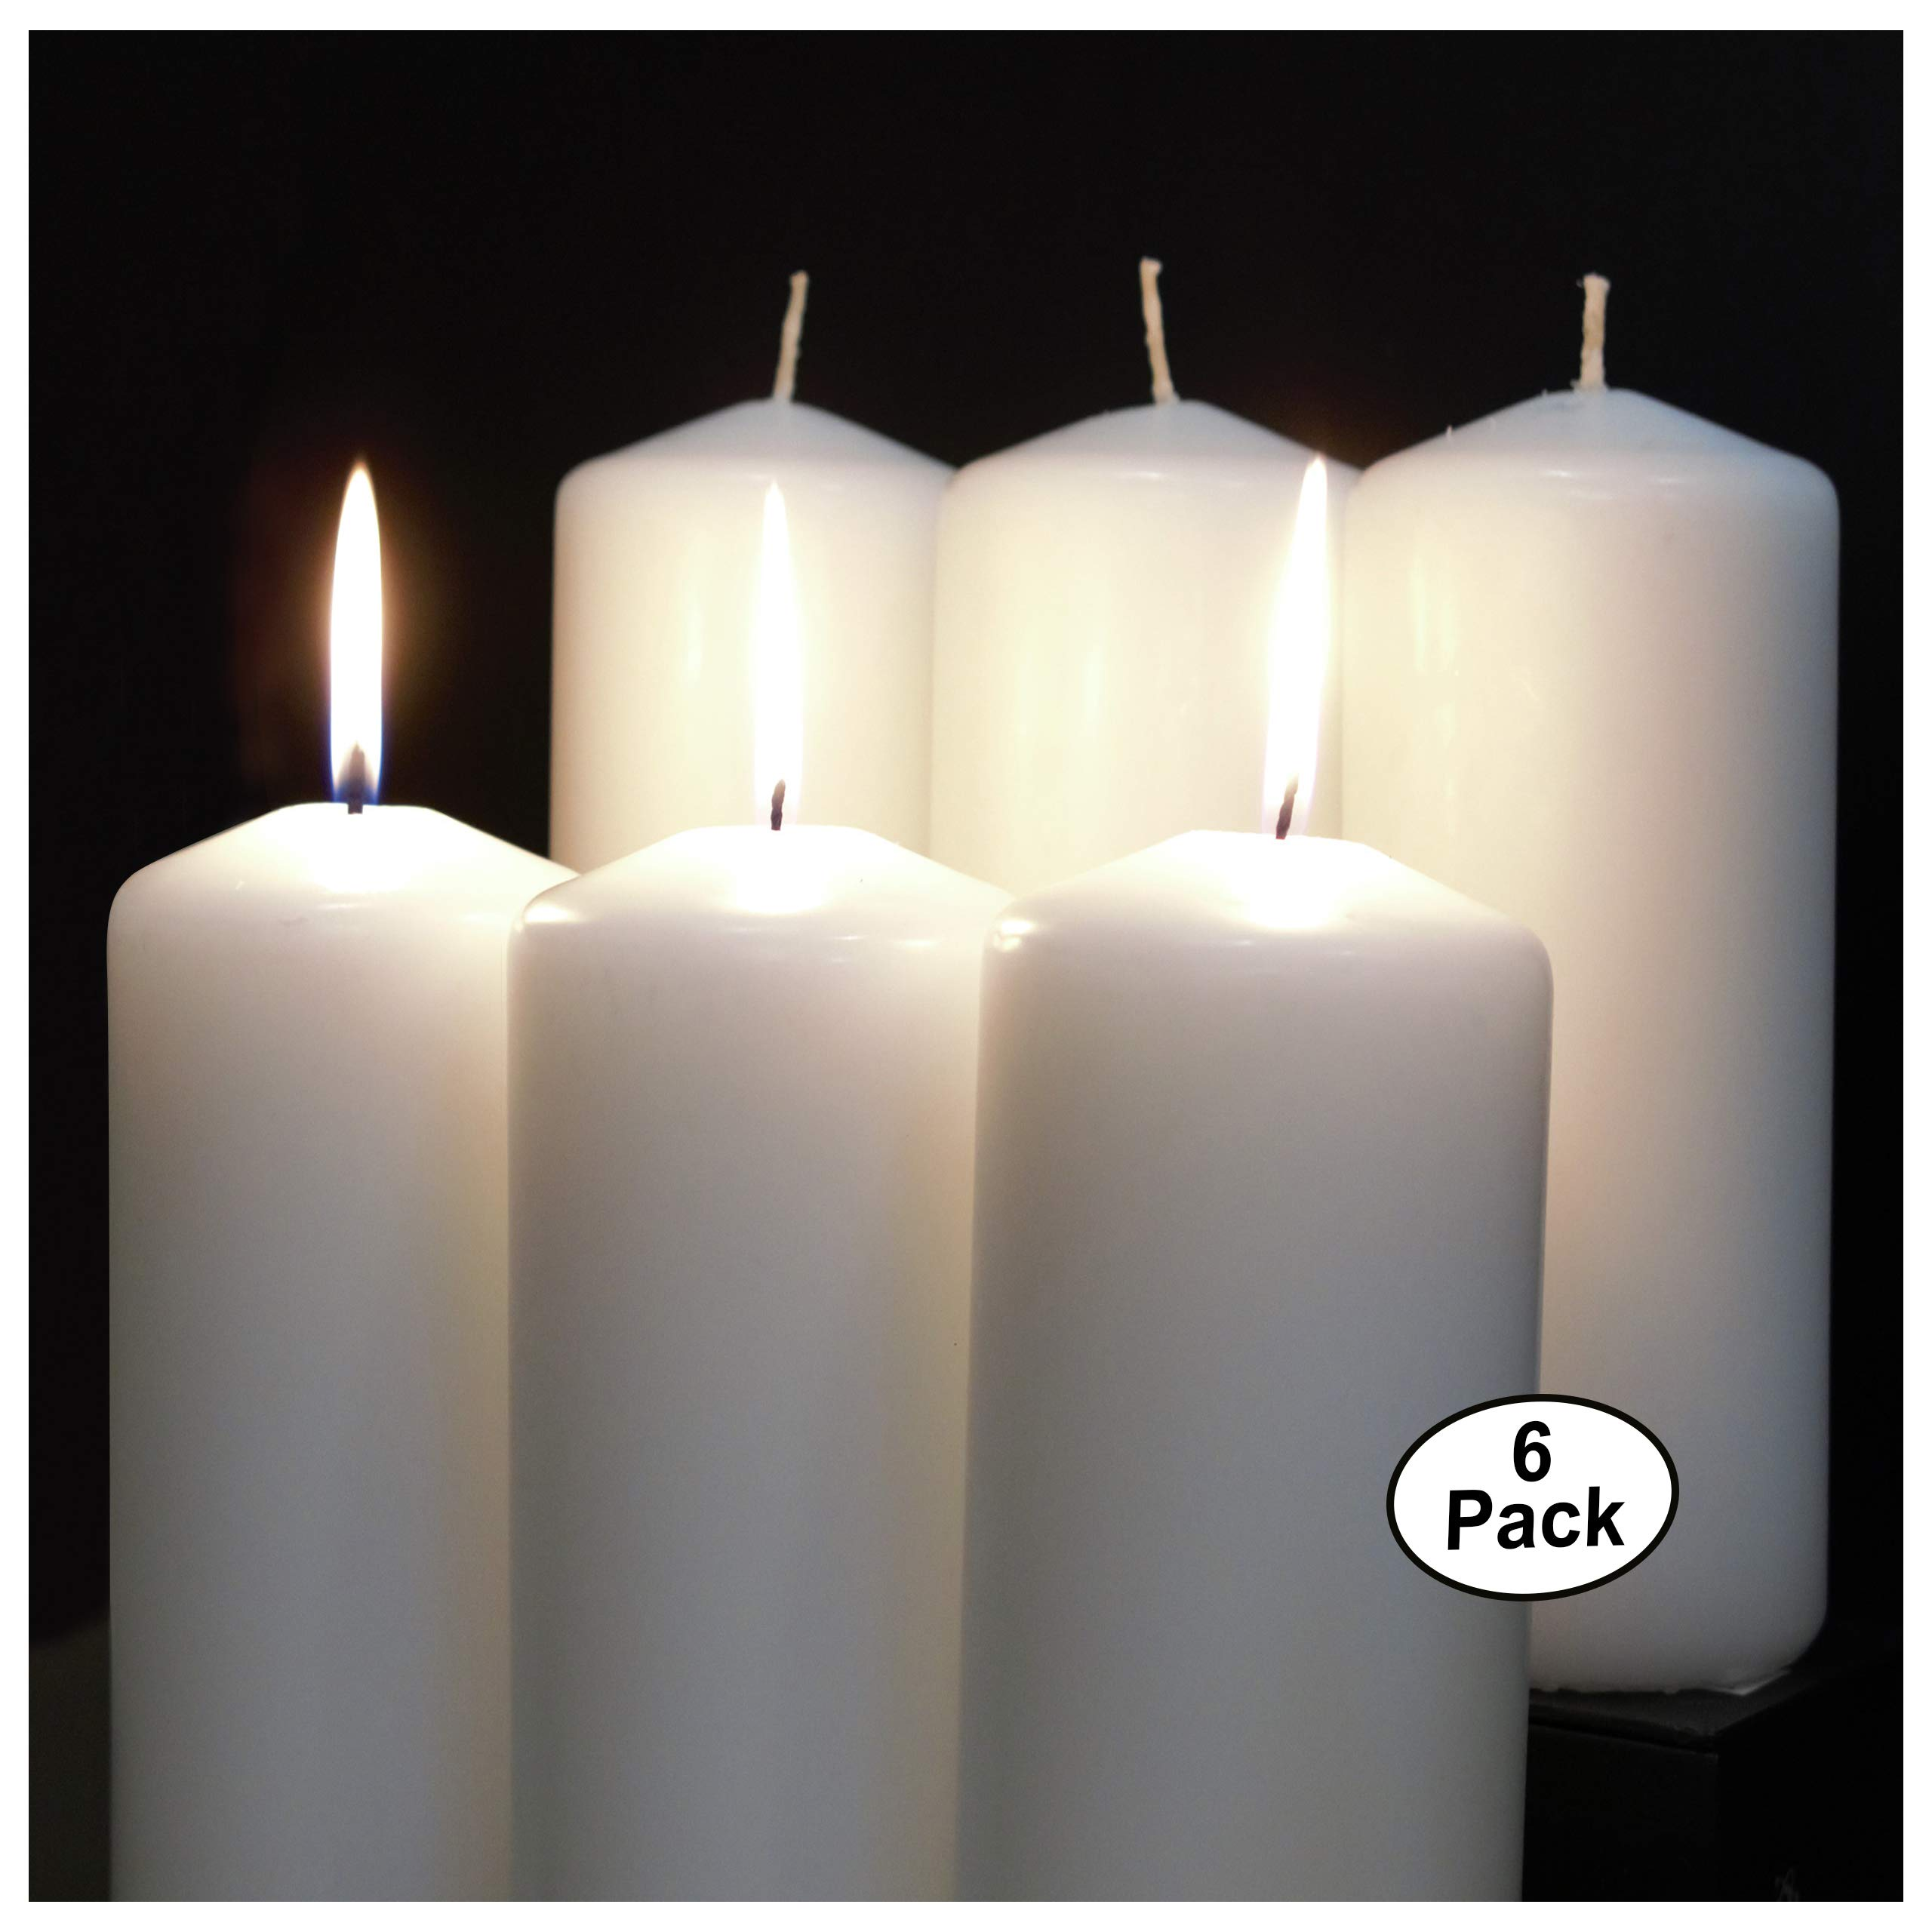 CandleNScent White Pillar Candles - 3'' x 6'' Set of 6 Unscented Cotton Wick Made in USA